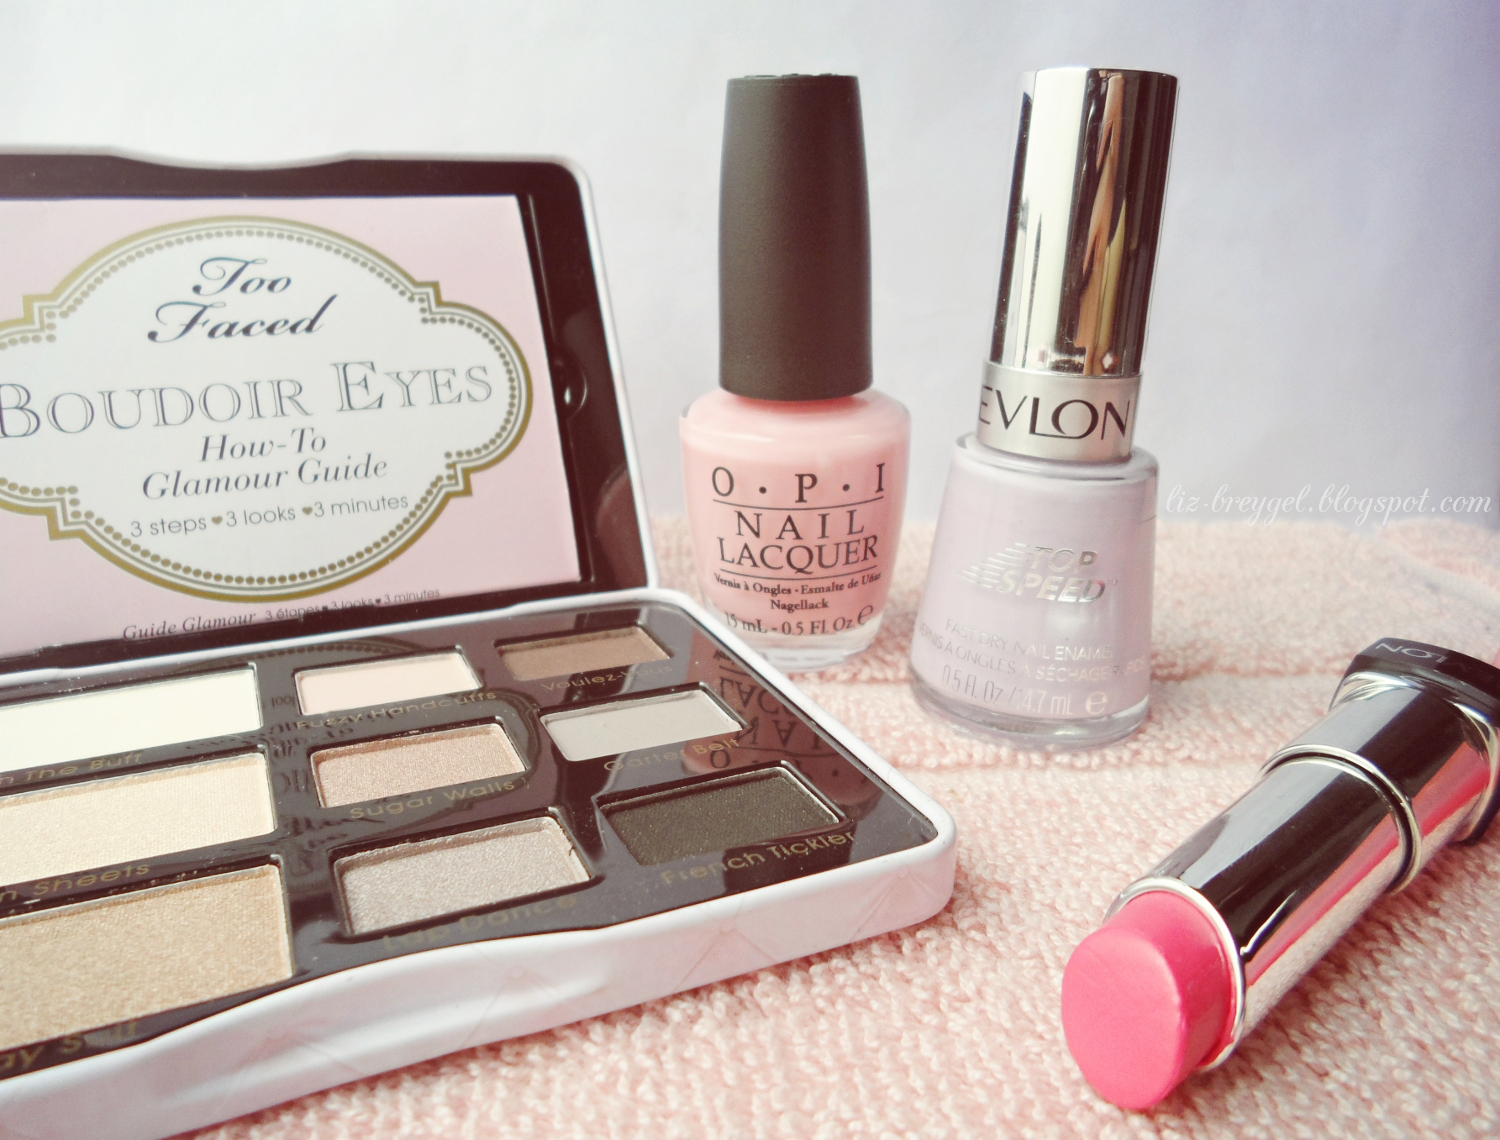 too faced palette review, opi lacquer review